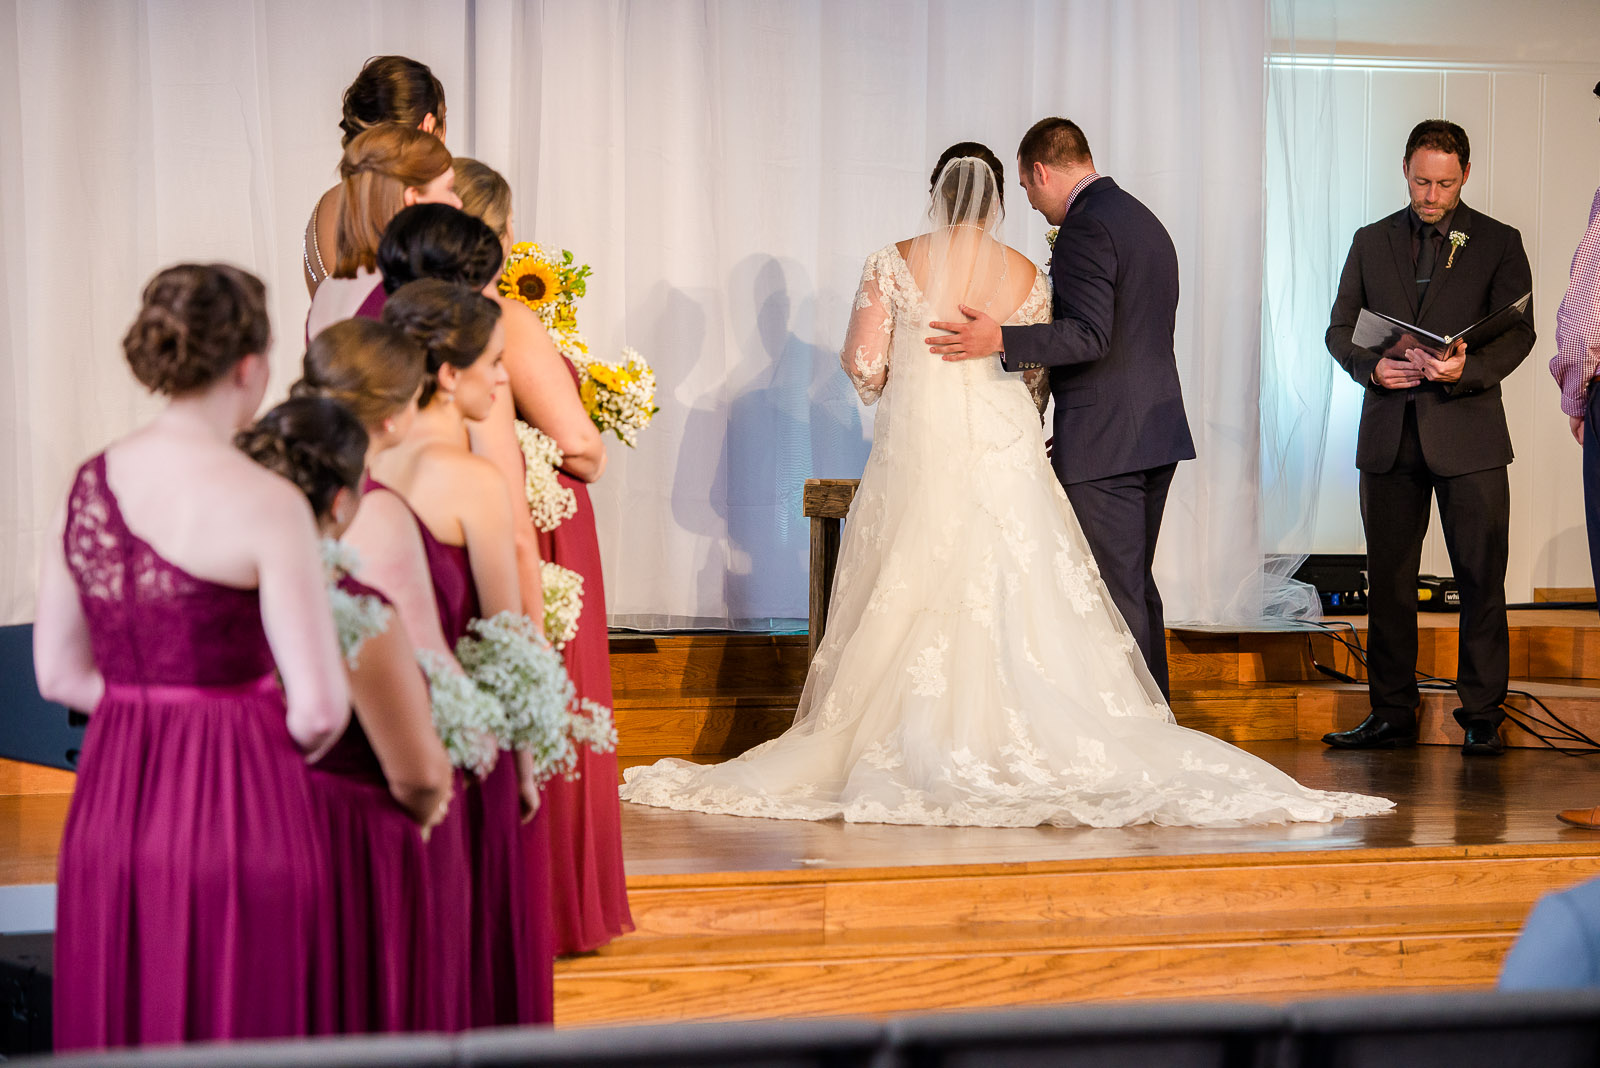 Eric_and_Christy_Photography_Blog_Wedding_Stacey_Geoff-12